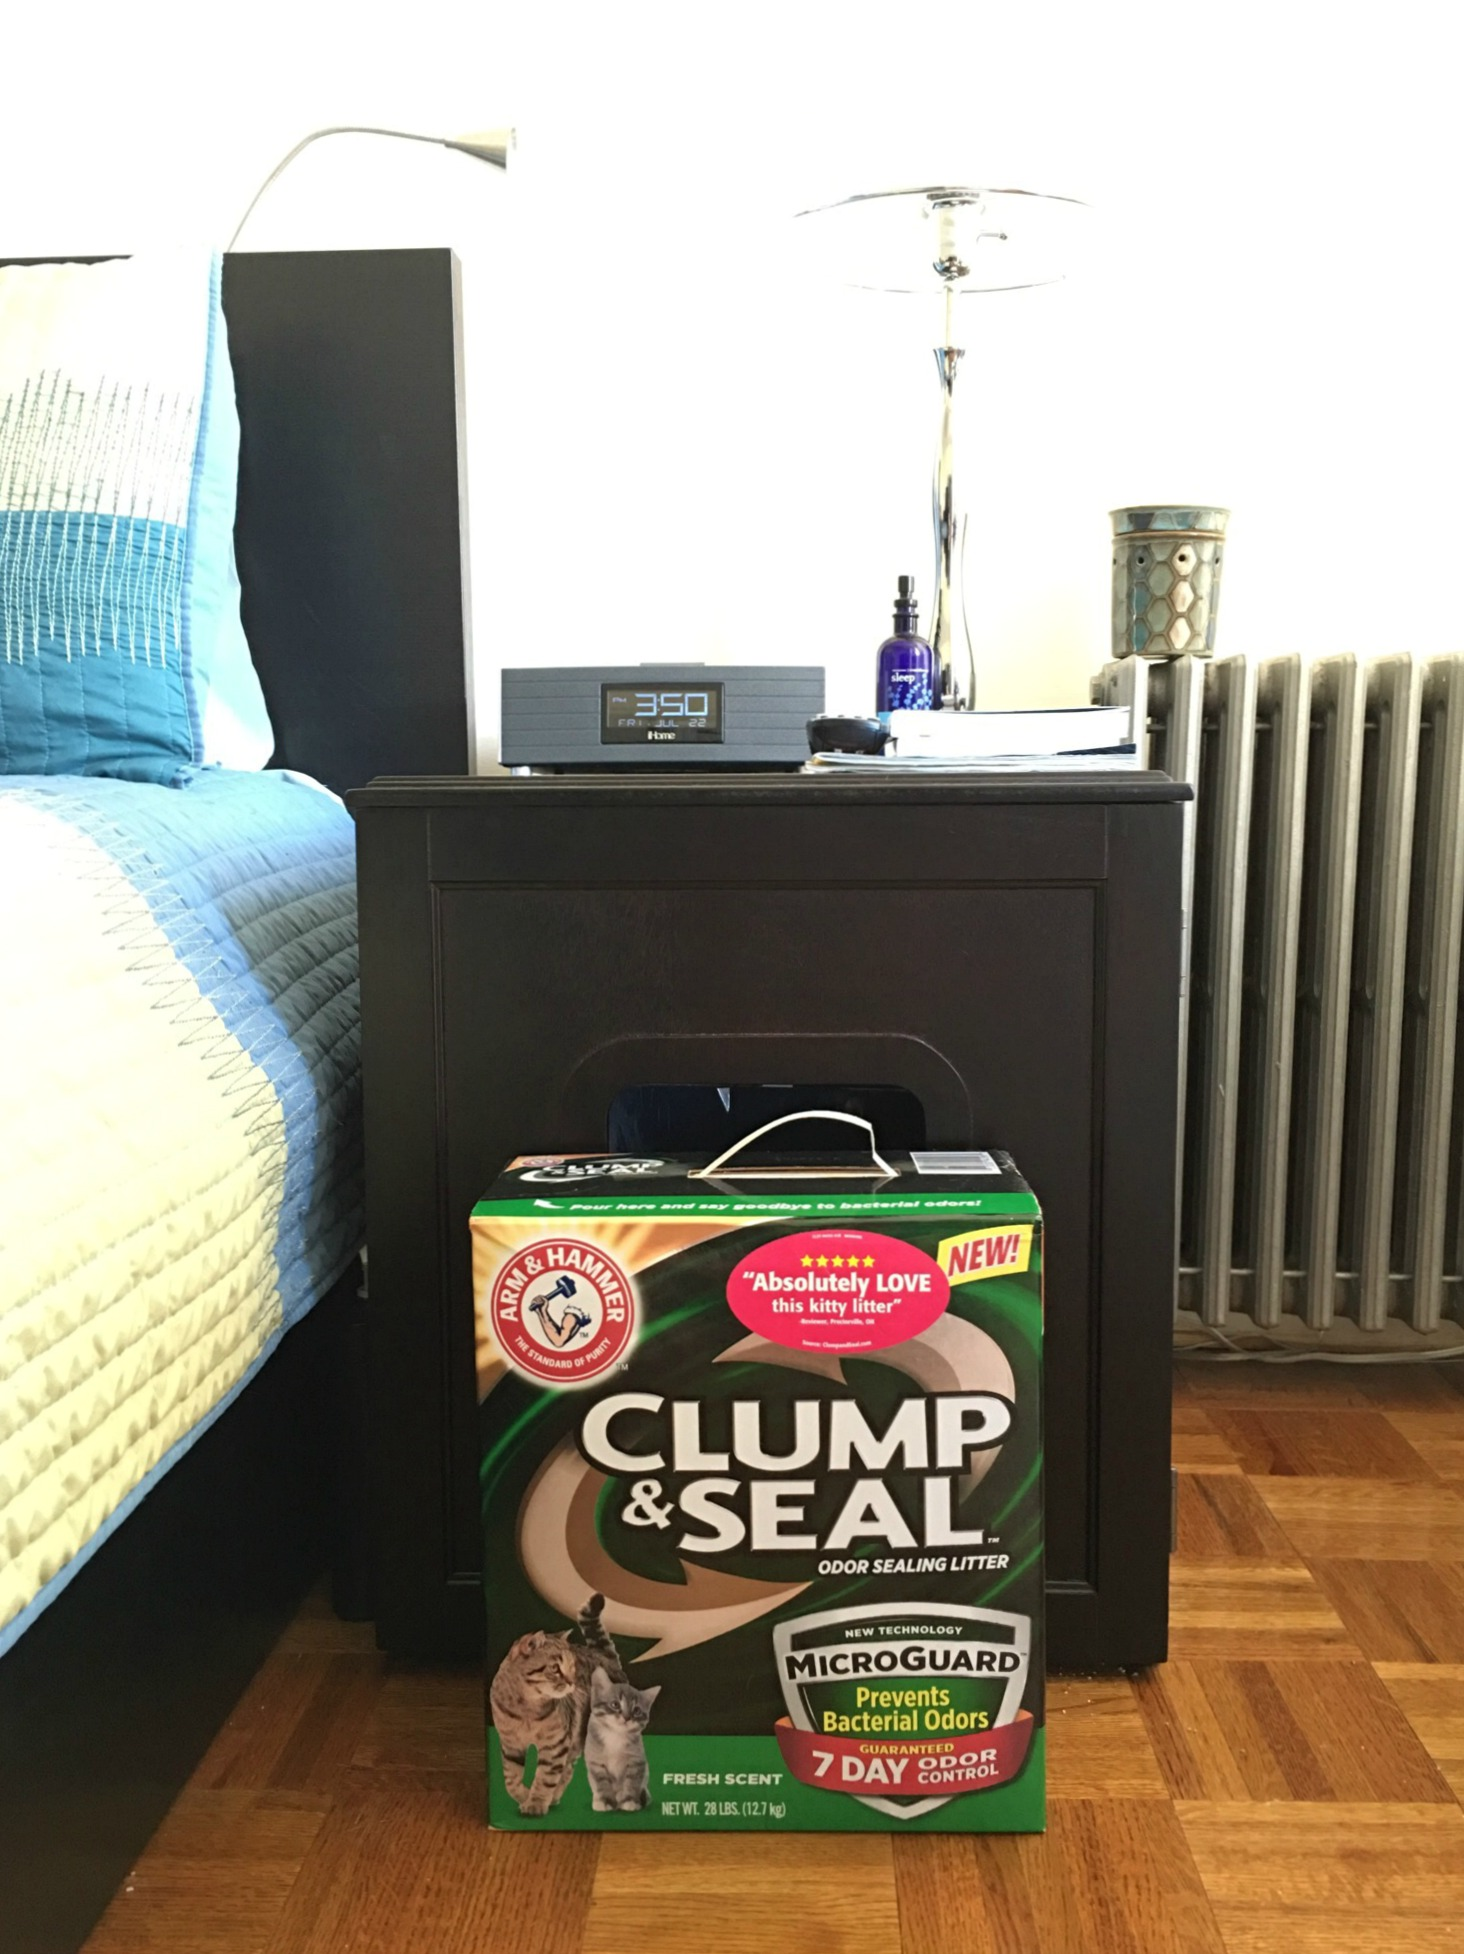 Arm & Hammer Clump & Seal Odor Sealing Litter